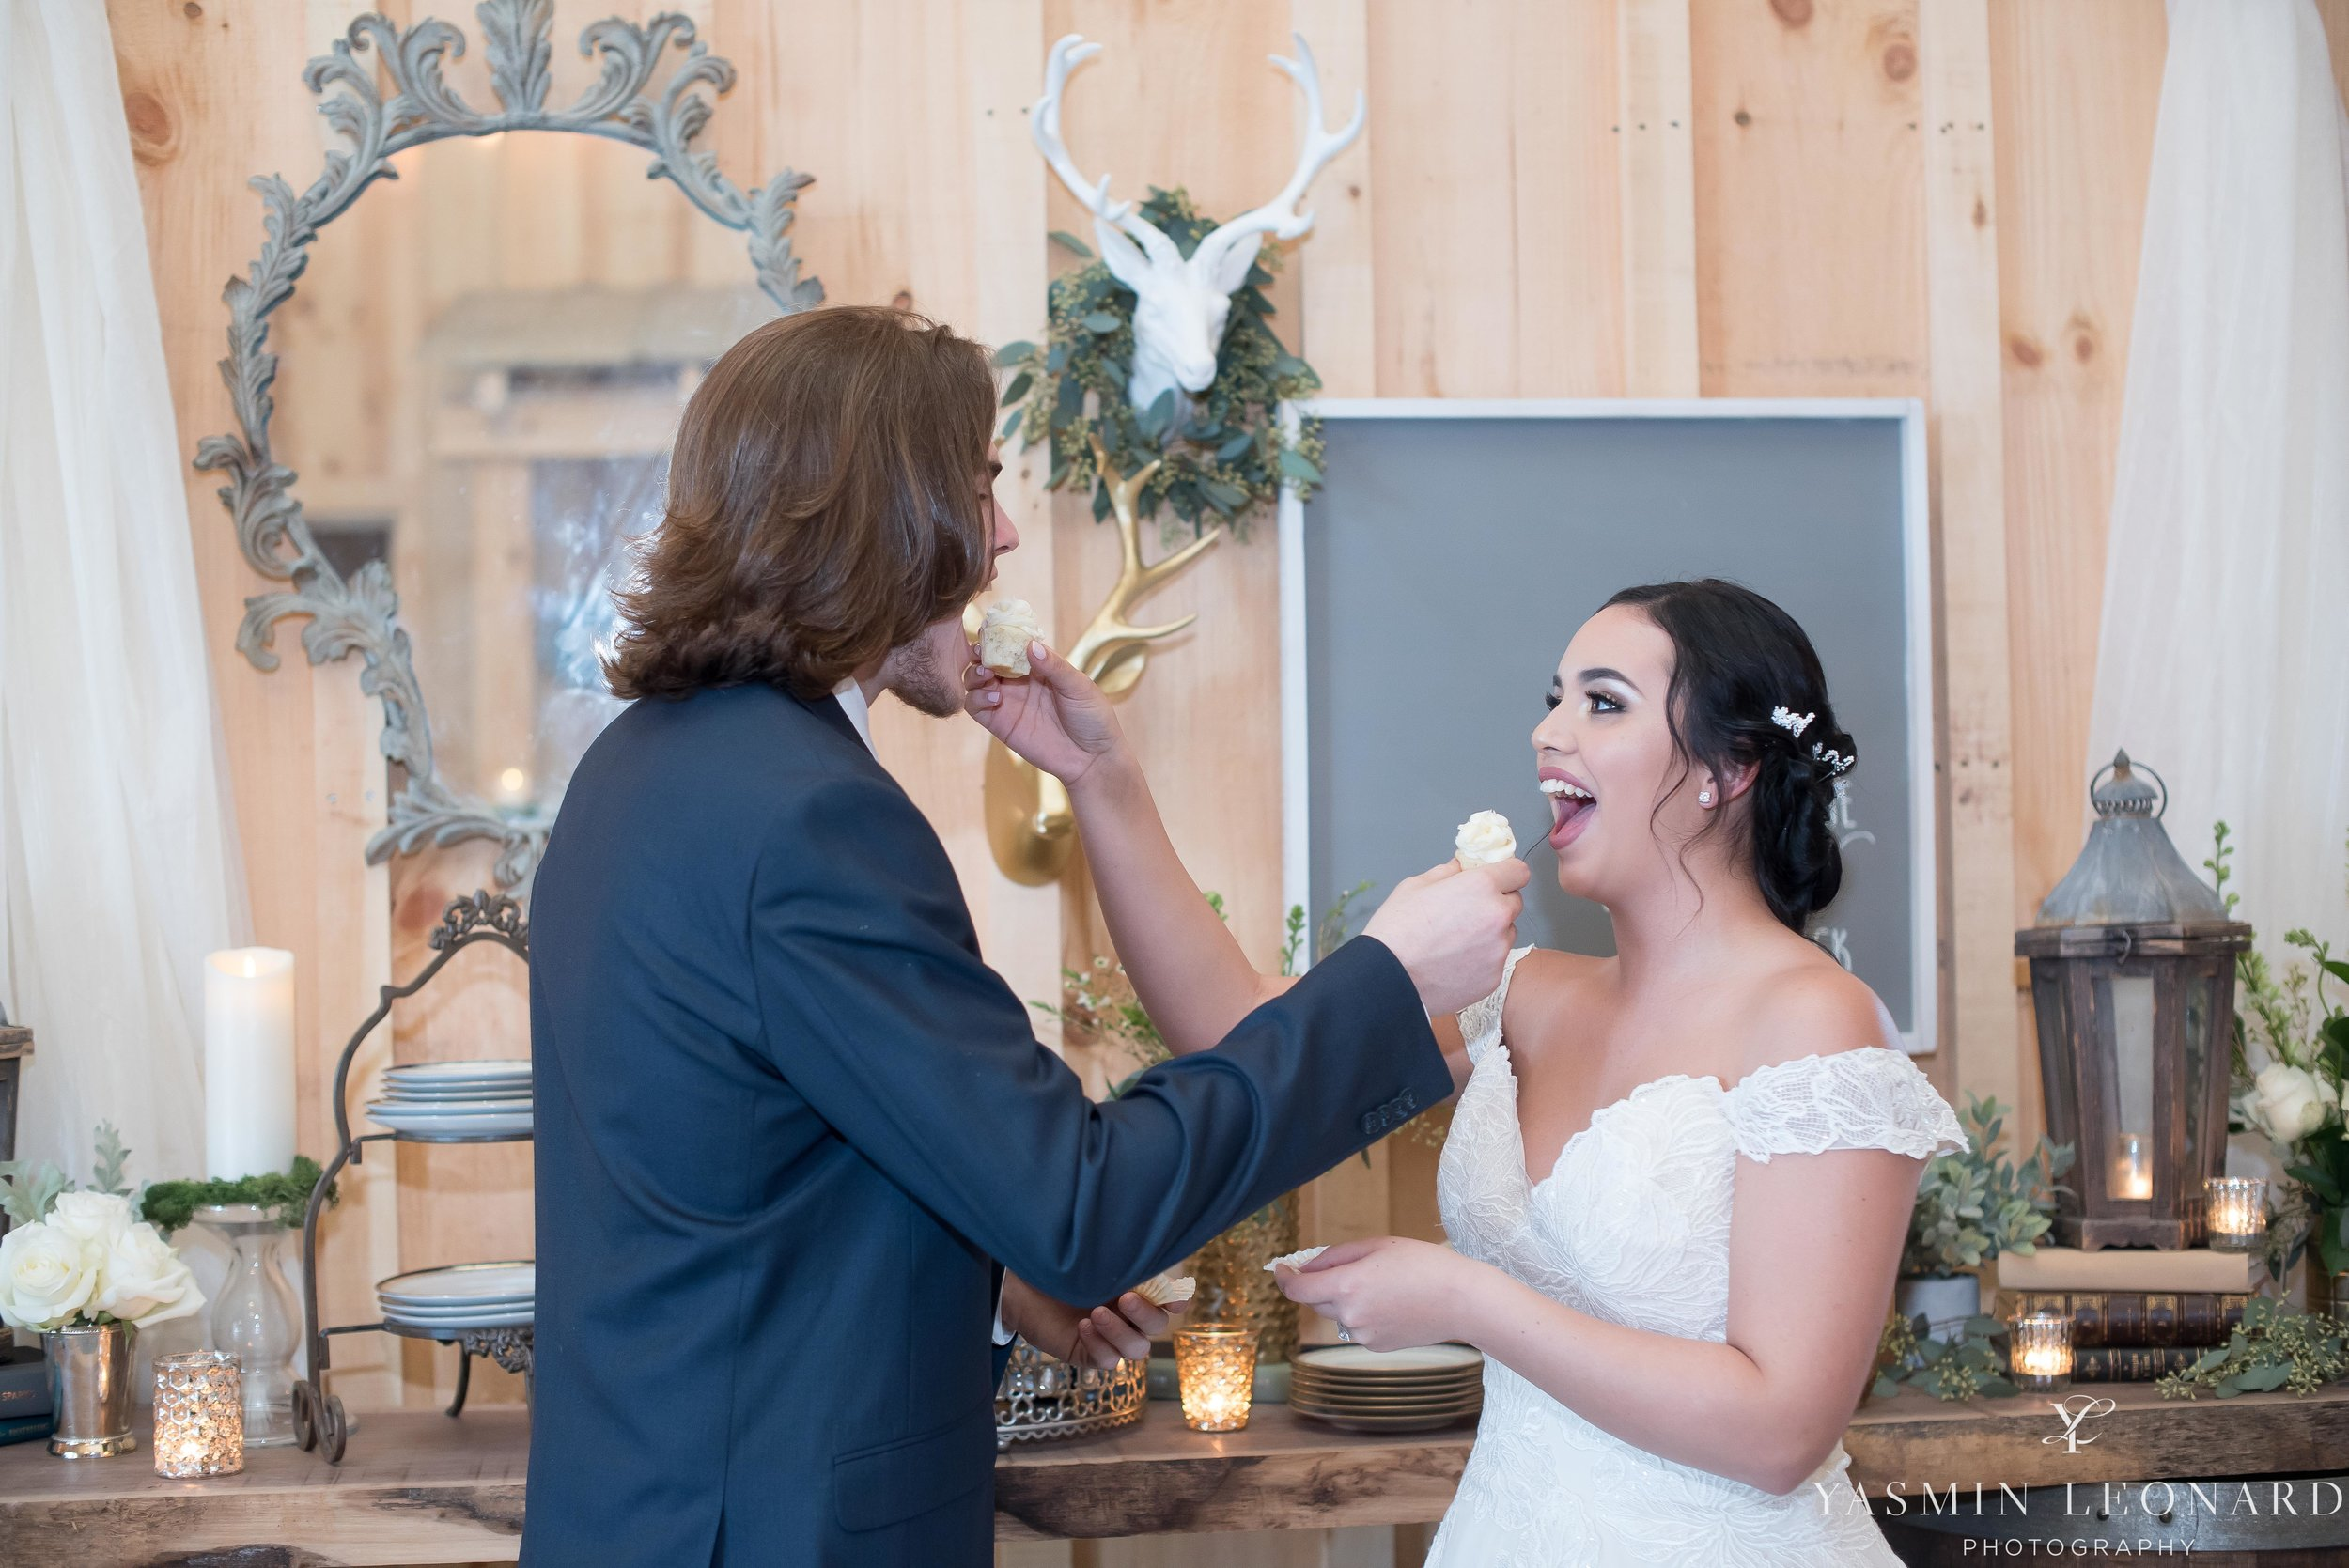 Old Homeplace Vineyard - Grits and Glitter - Dashing Dames Bridal Boutique - Just Priceless - Yasmin Leonard Photography - High Point Weddings - NC Weddings - NC Wedding Venues - High Point Jewelers - NC Wines - NC Vineyards - Cupcake Cuties-77.jpg